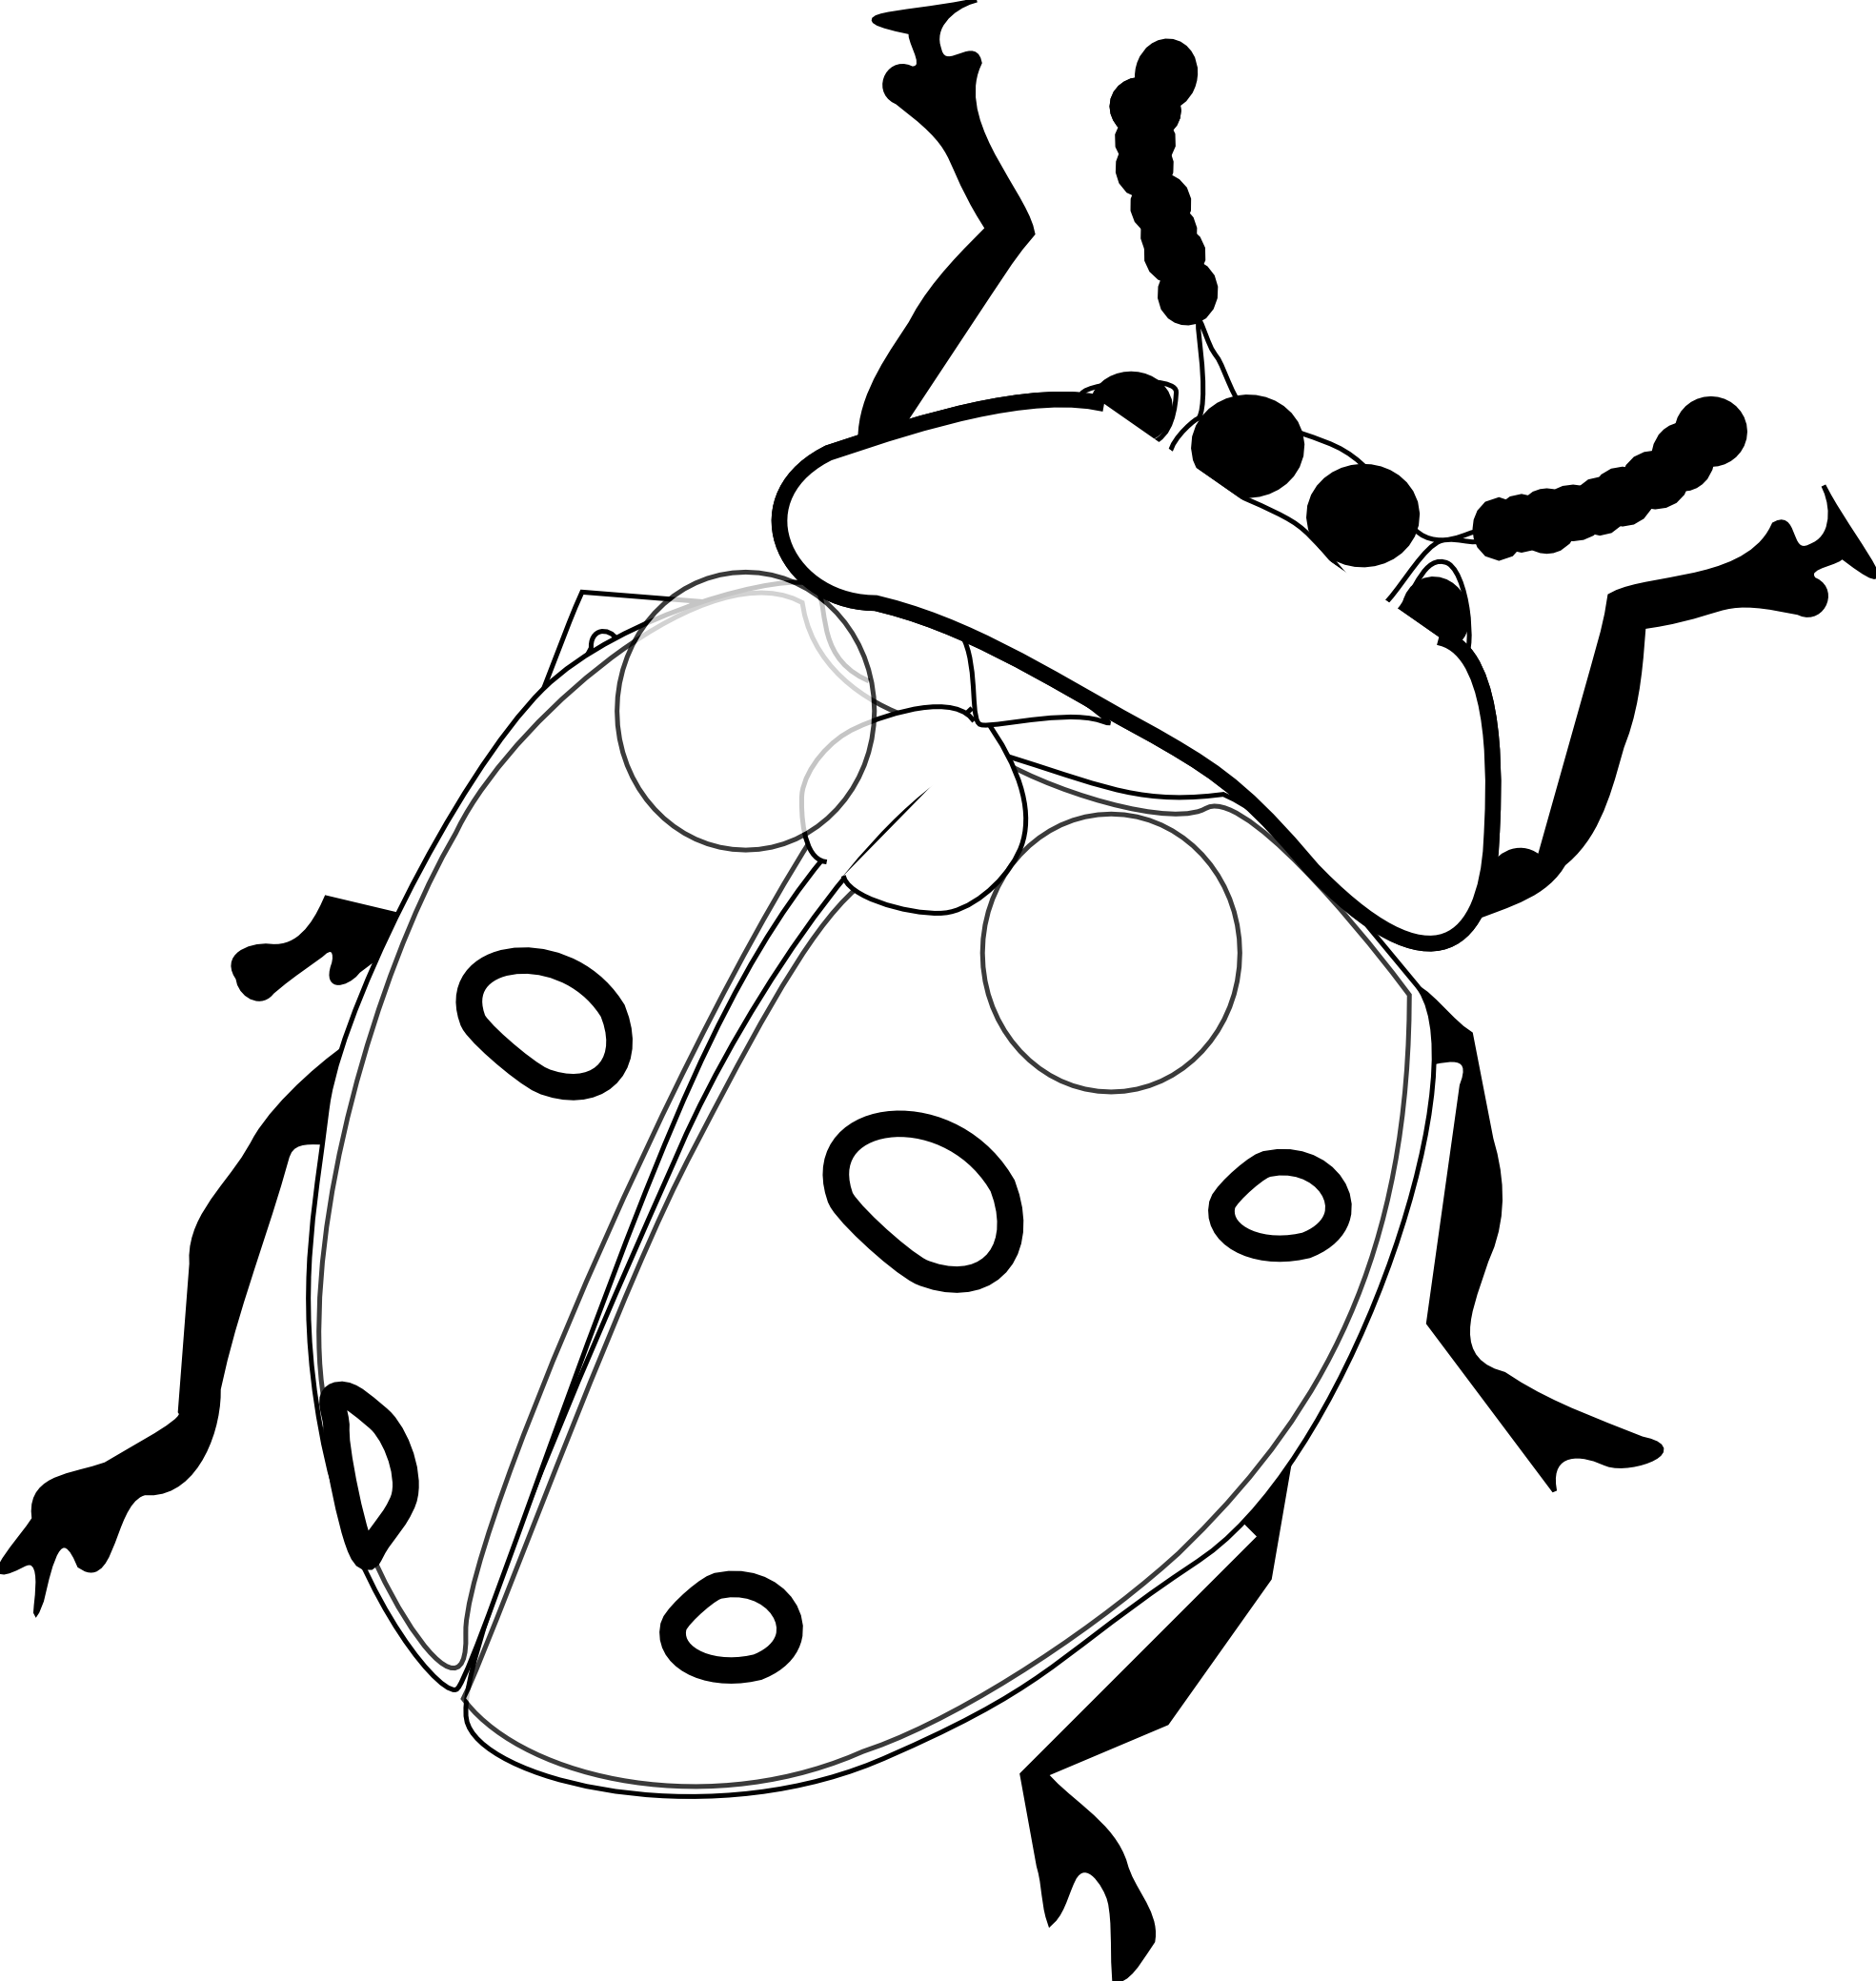 Ladybugs clipart drawing. Ladybug black and white